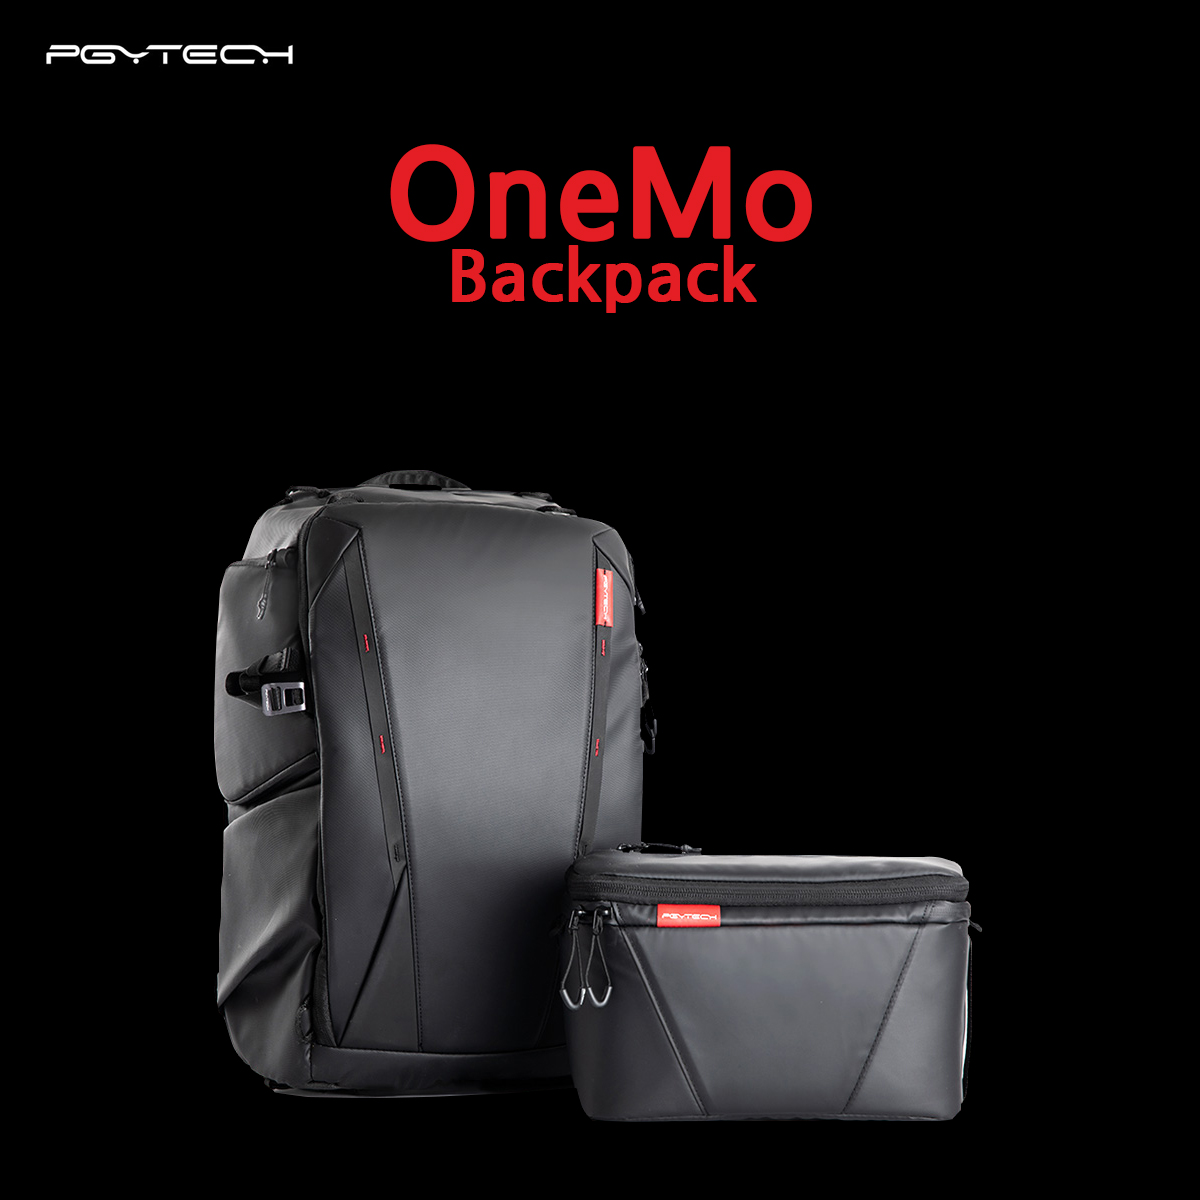 OneMo Backpack